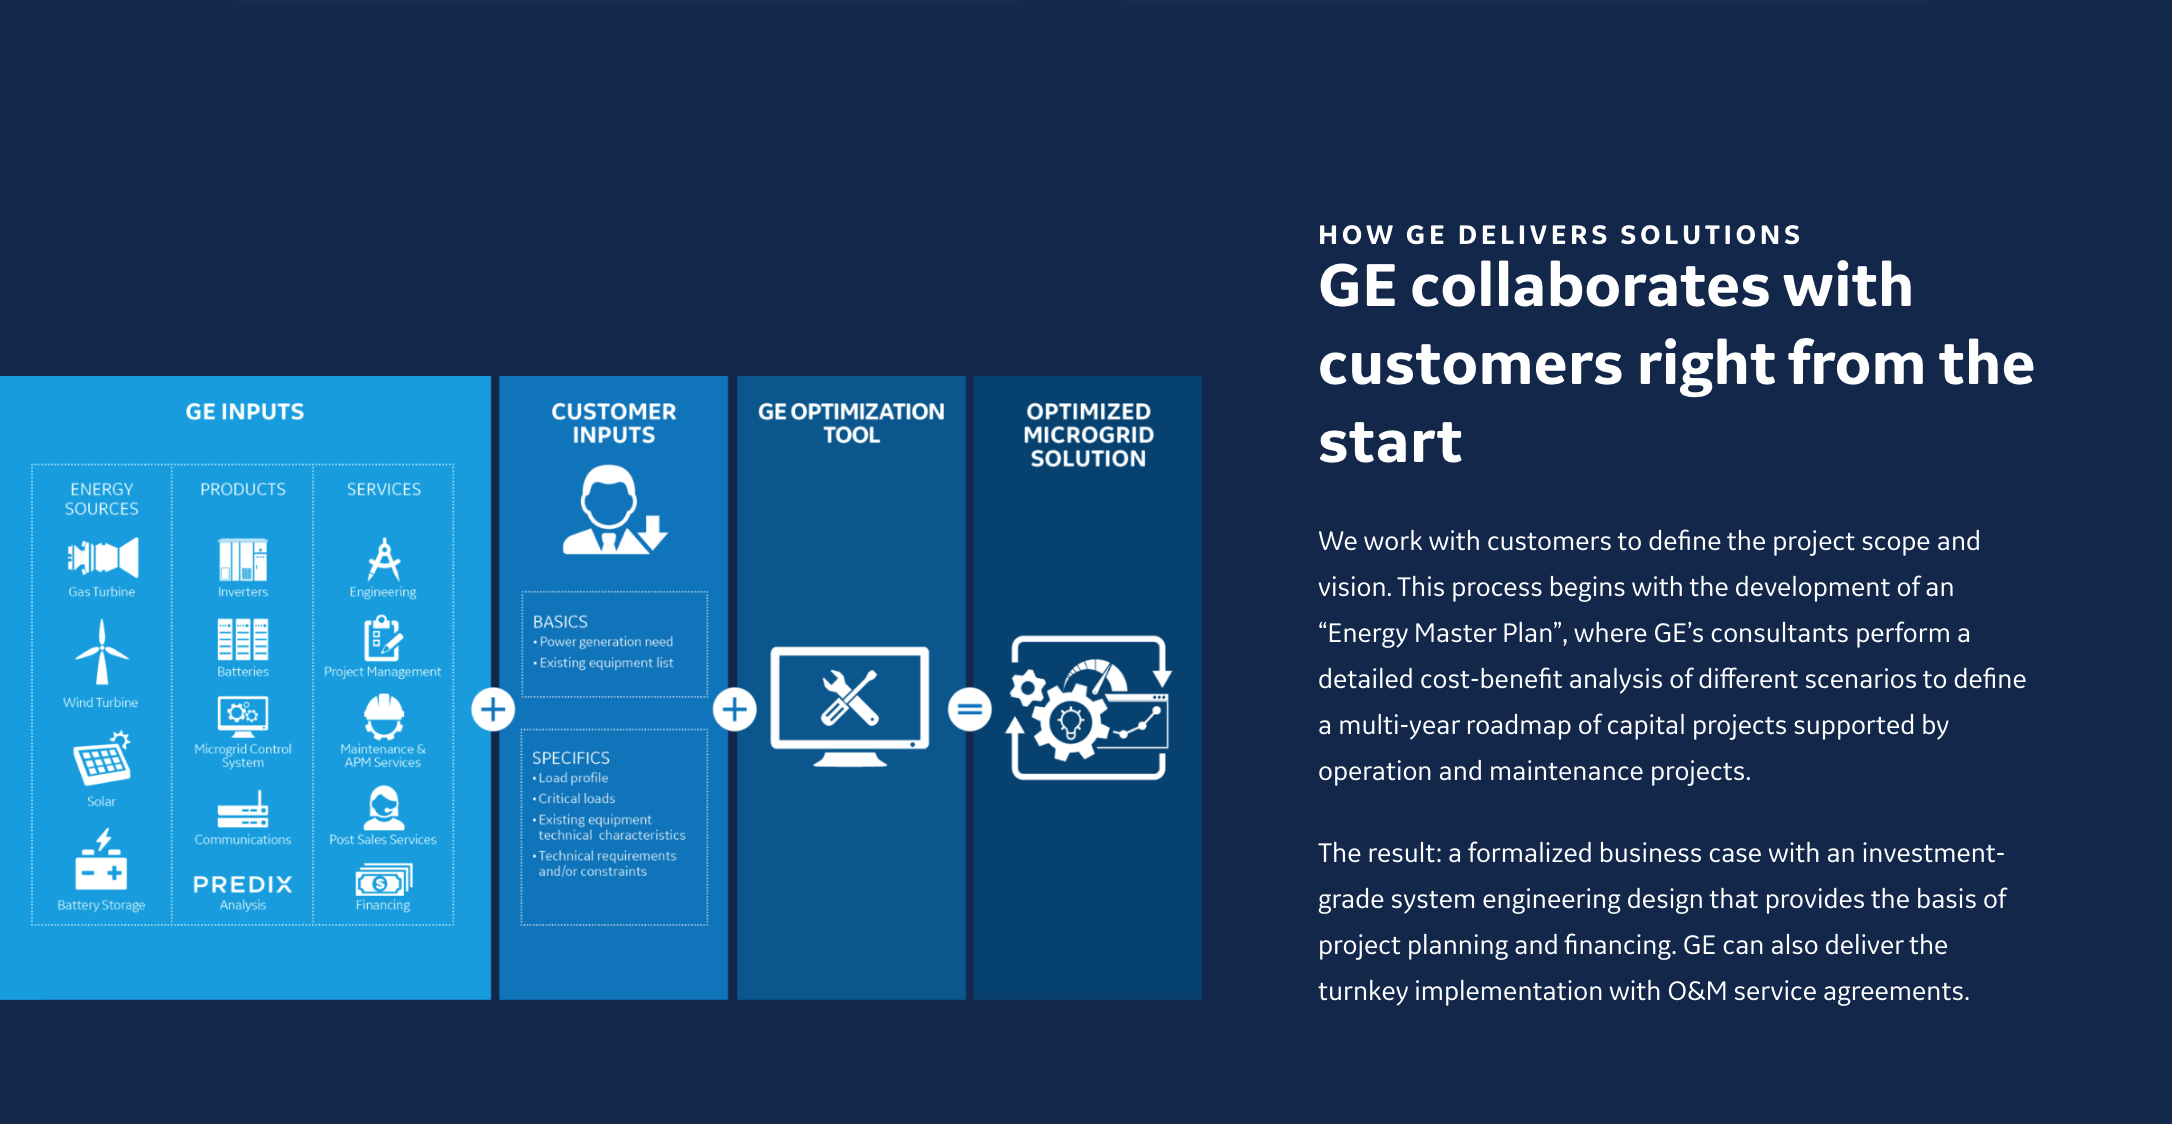 GE collaborates with customers